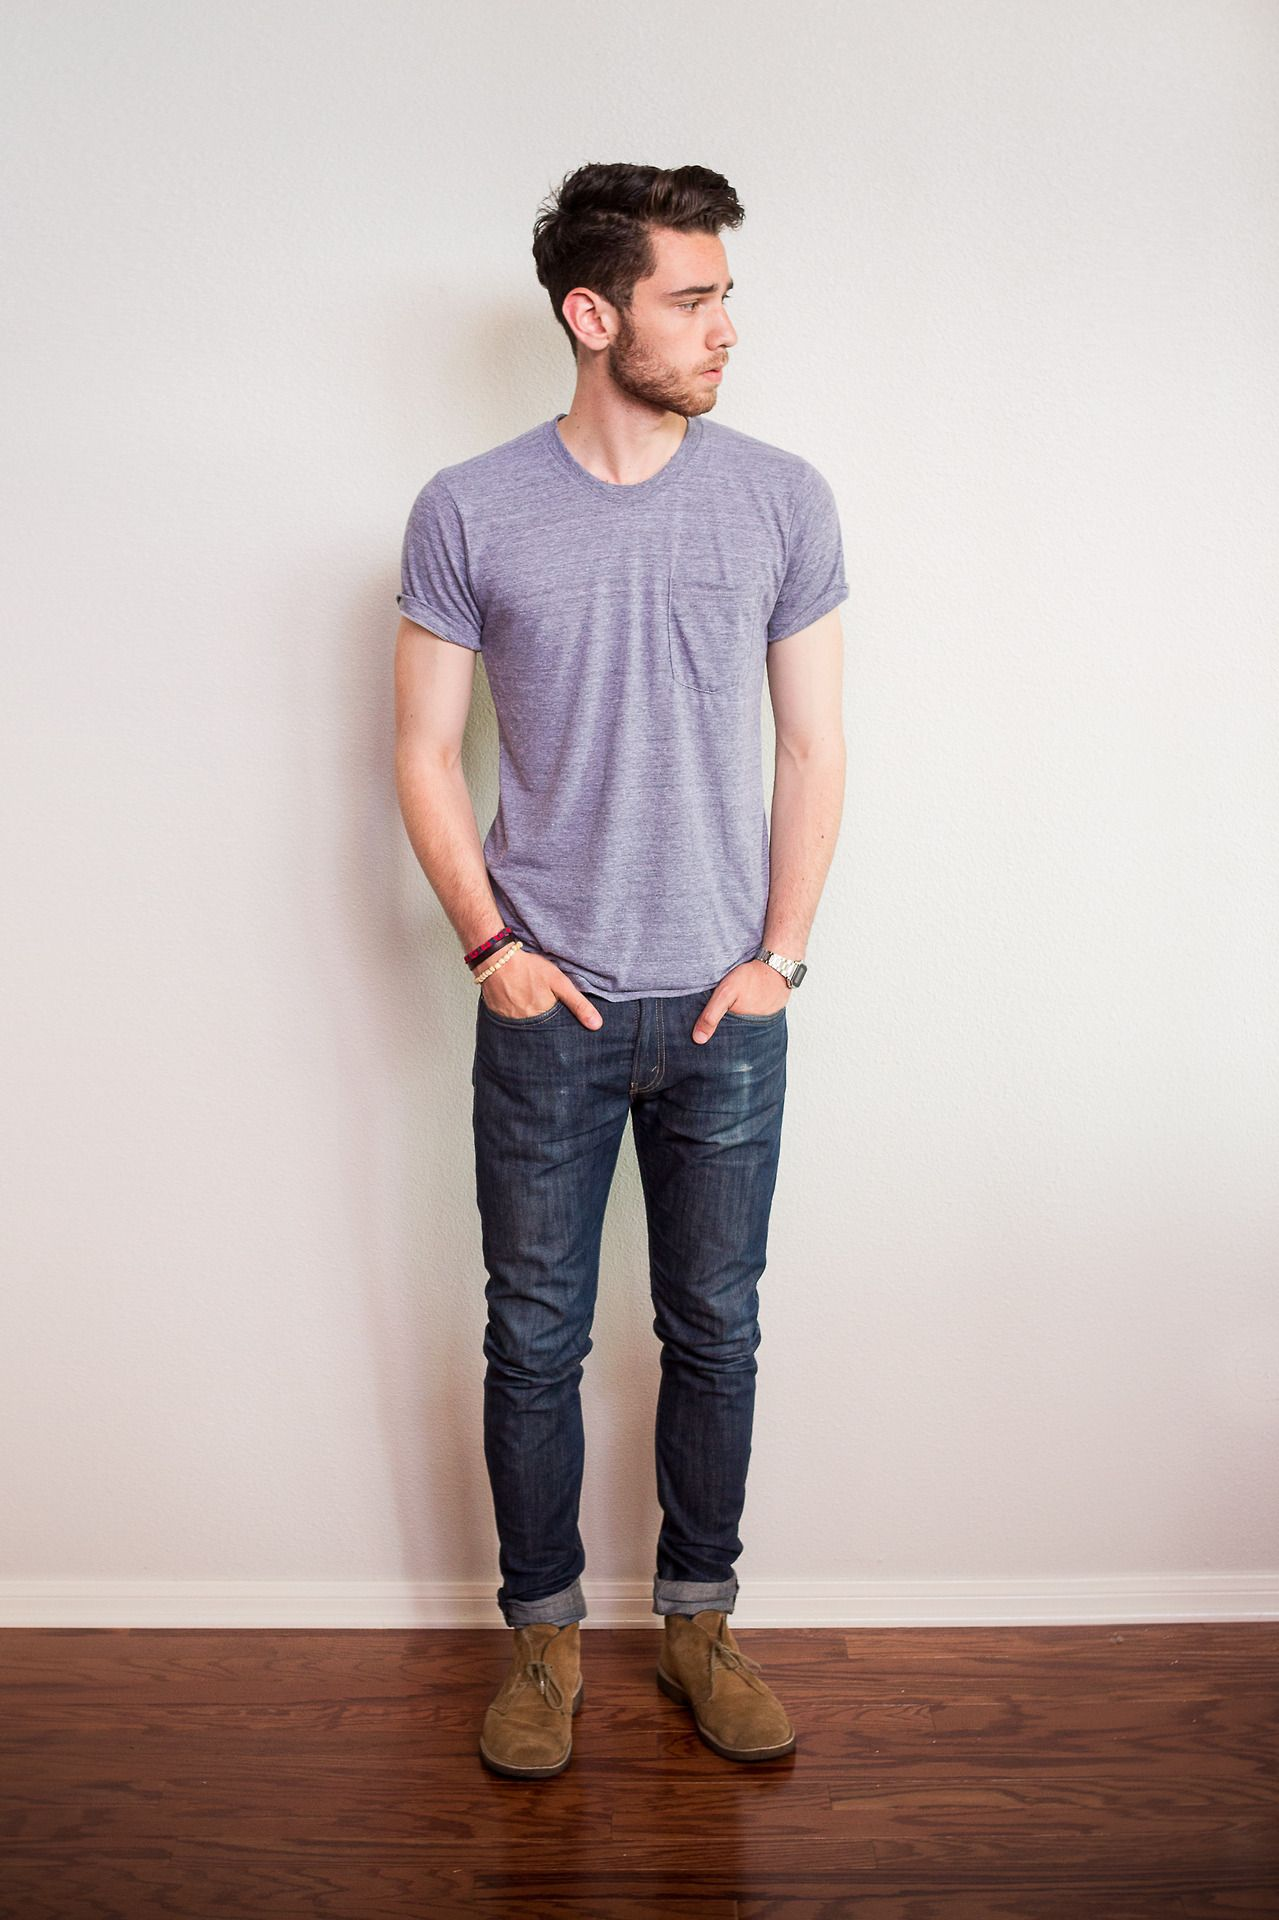 Simple jeans denim desert boots fashion men tumblr t shirt Style streetstyle | Style | Pinterest ...